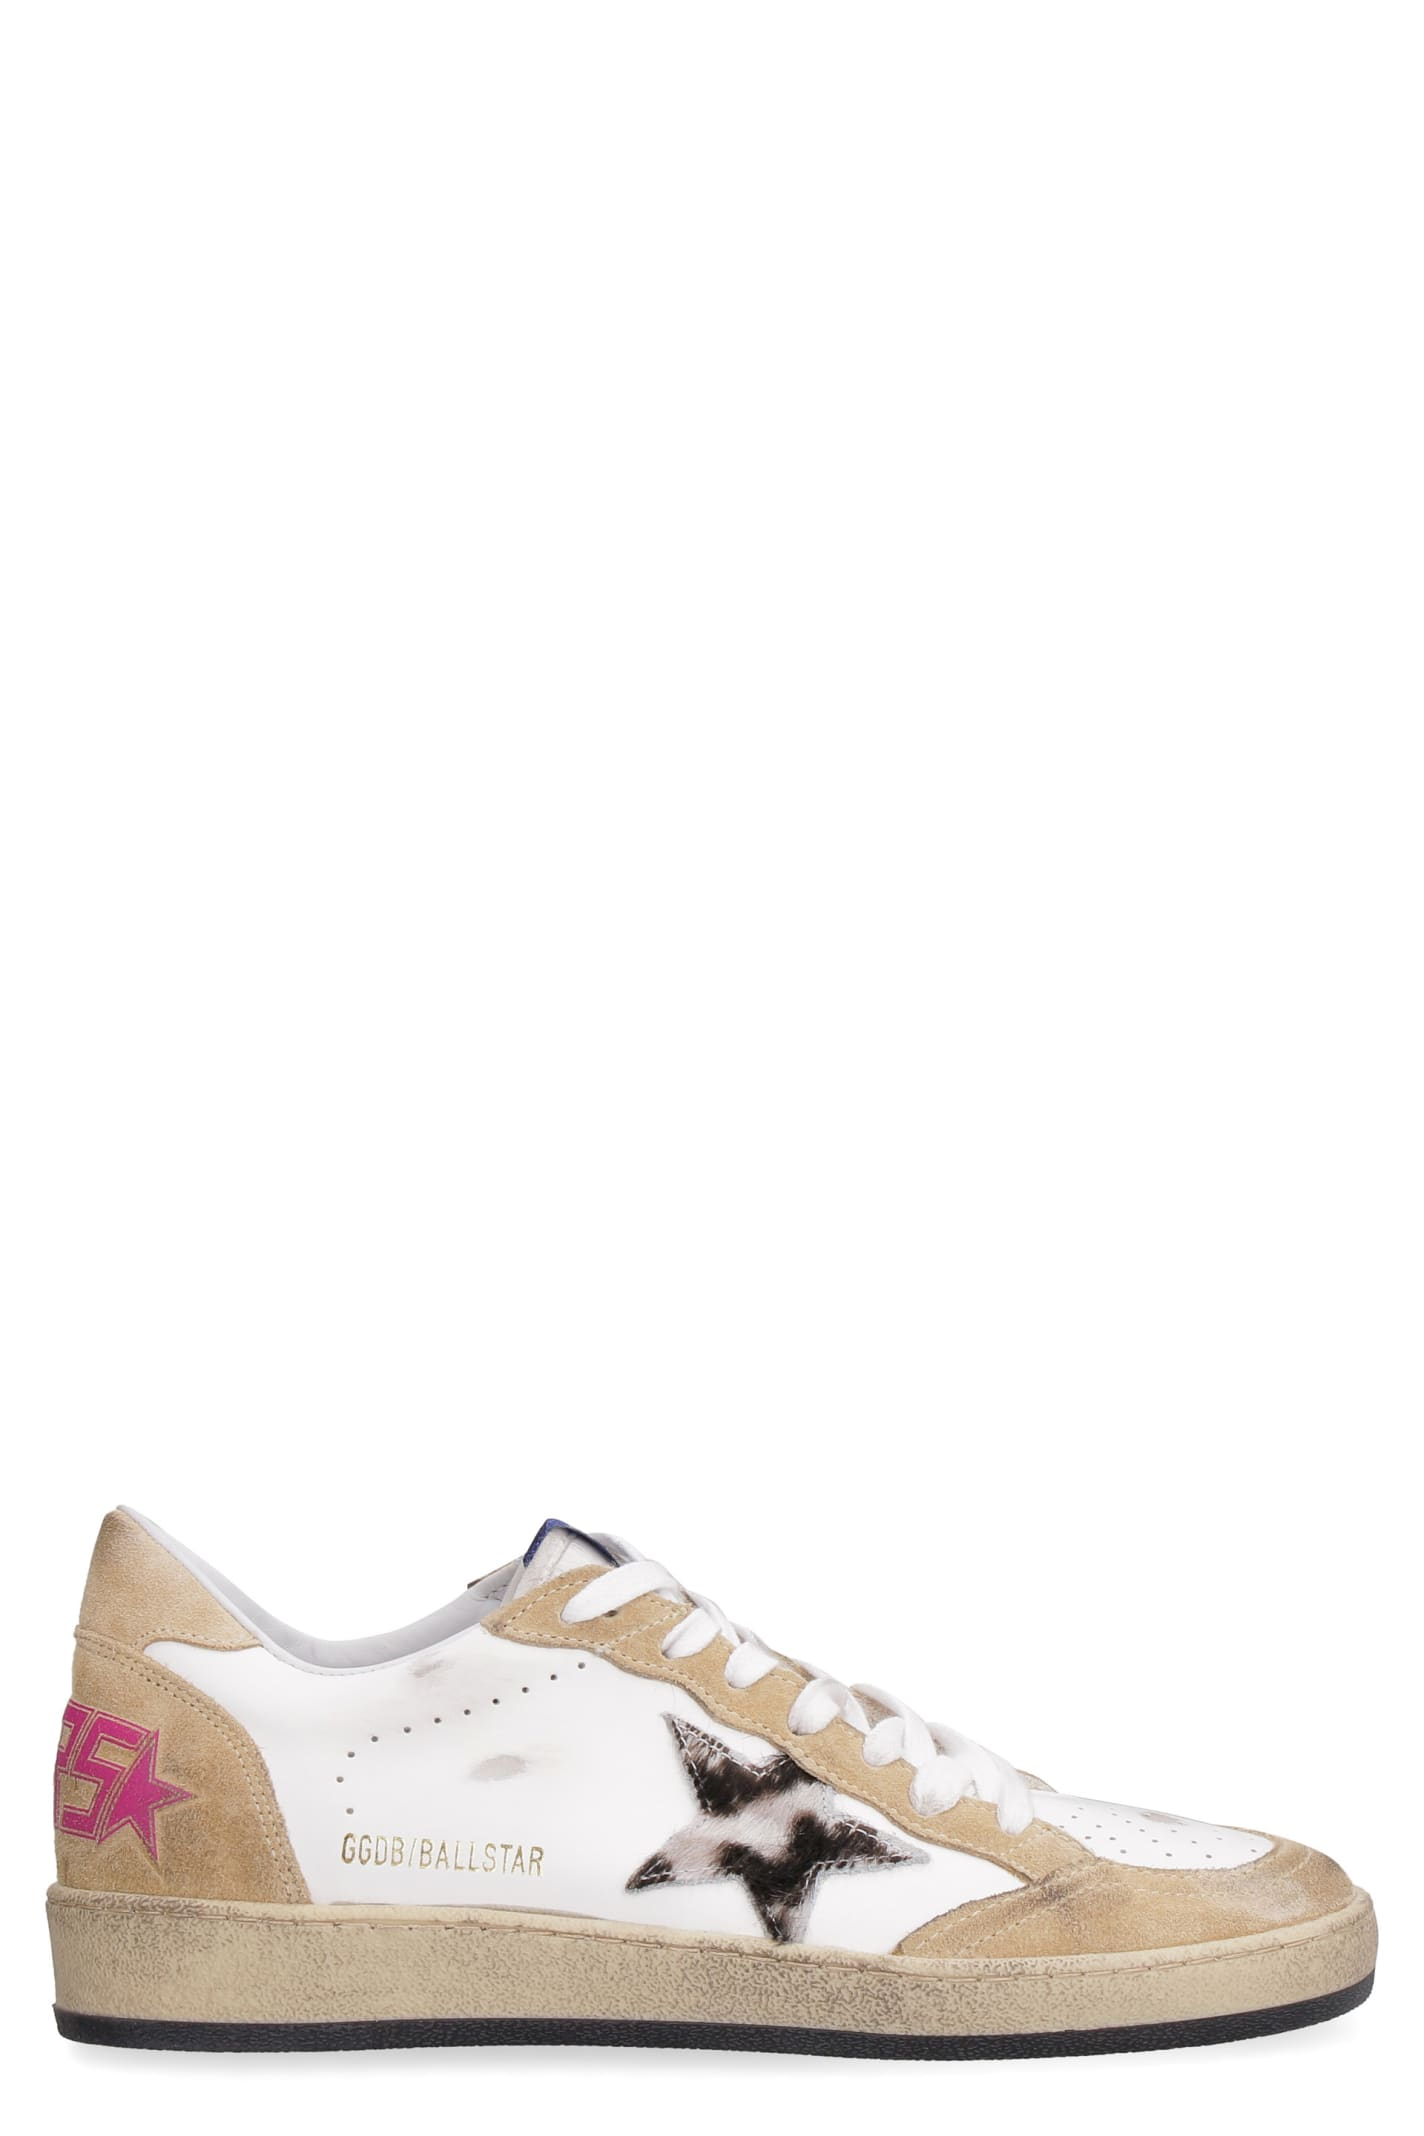 Buy Golden Goose Ball Star Leather Sneakers online, shop Golden Goose shoes with free shipping